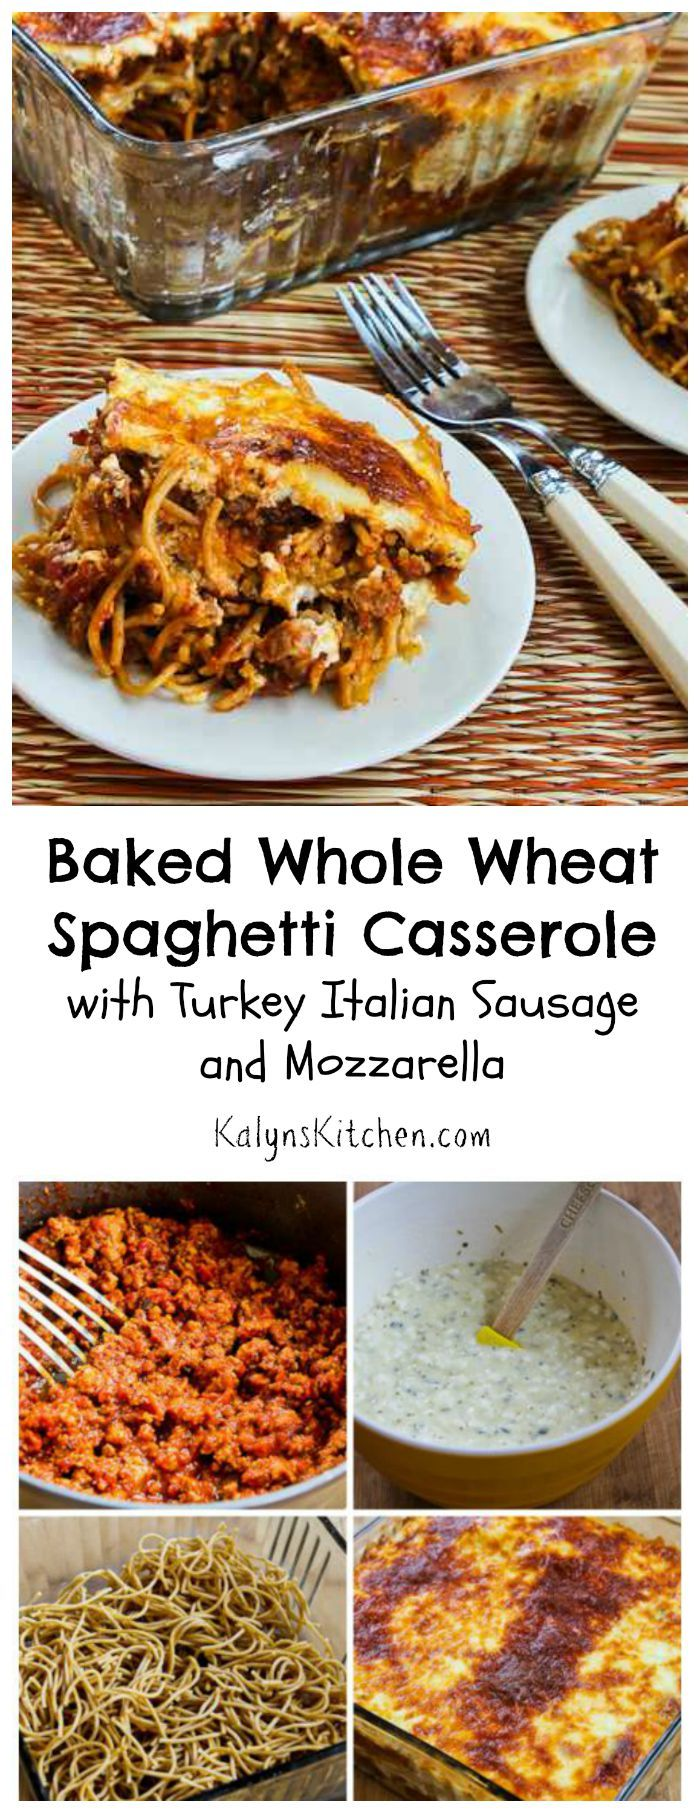 It's almost time for #BackToSchool; time to start collecting easy casserole recipes for school-night dinners! This Baked Whole Wheat Spaghetti Casserole is easy and delicious.  [from KalynsKitchen.com] #healthy #casserole